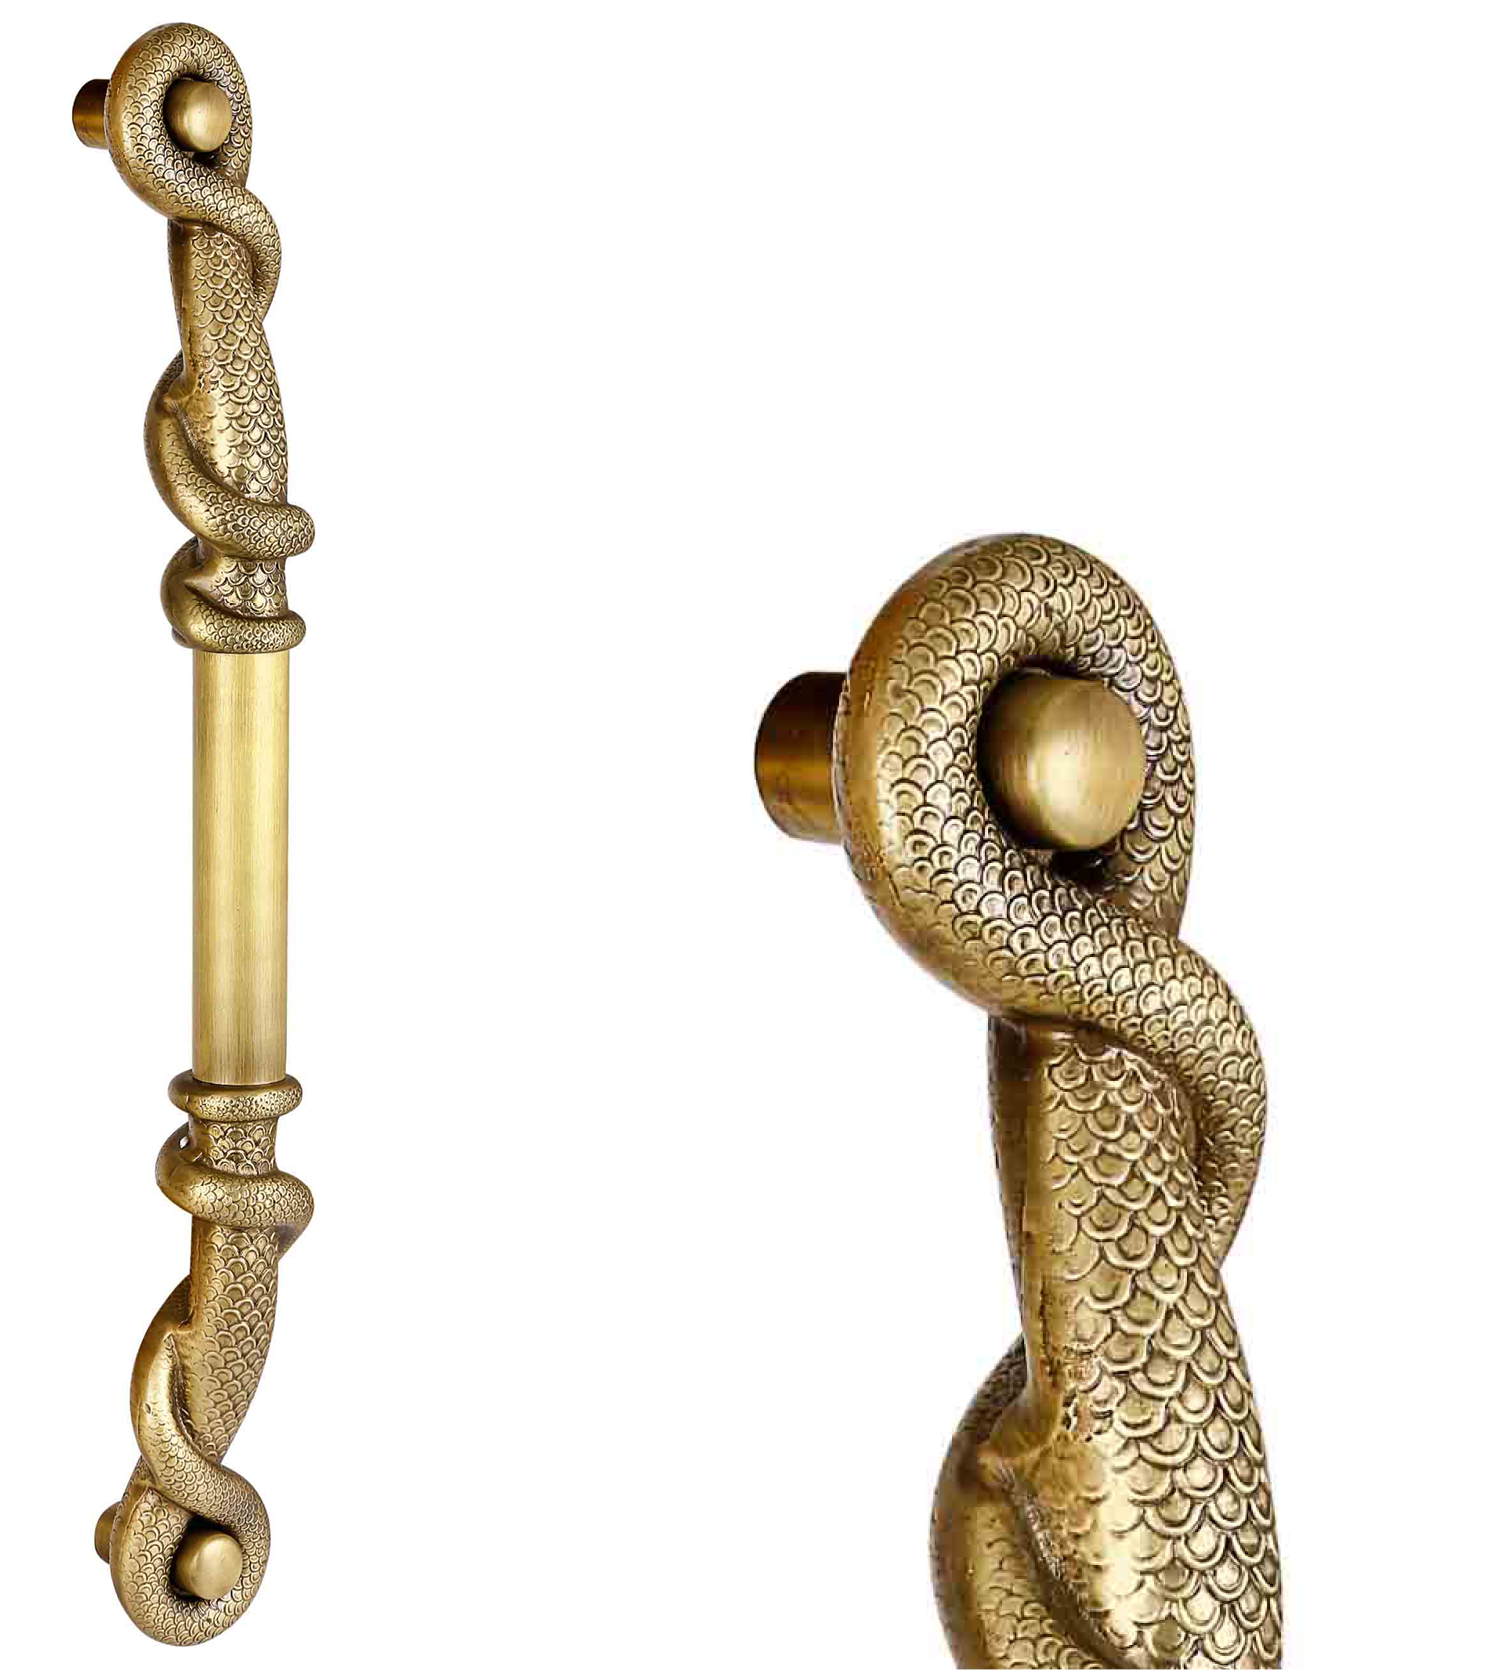 Baroque main door pull handle and locks for glass and wooden doors  for homes